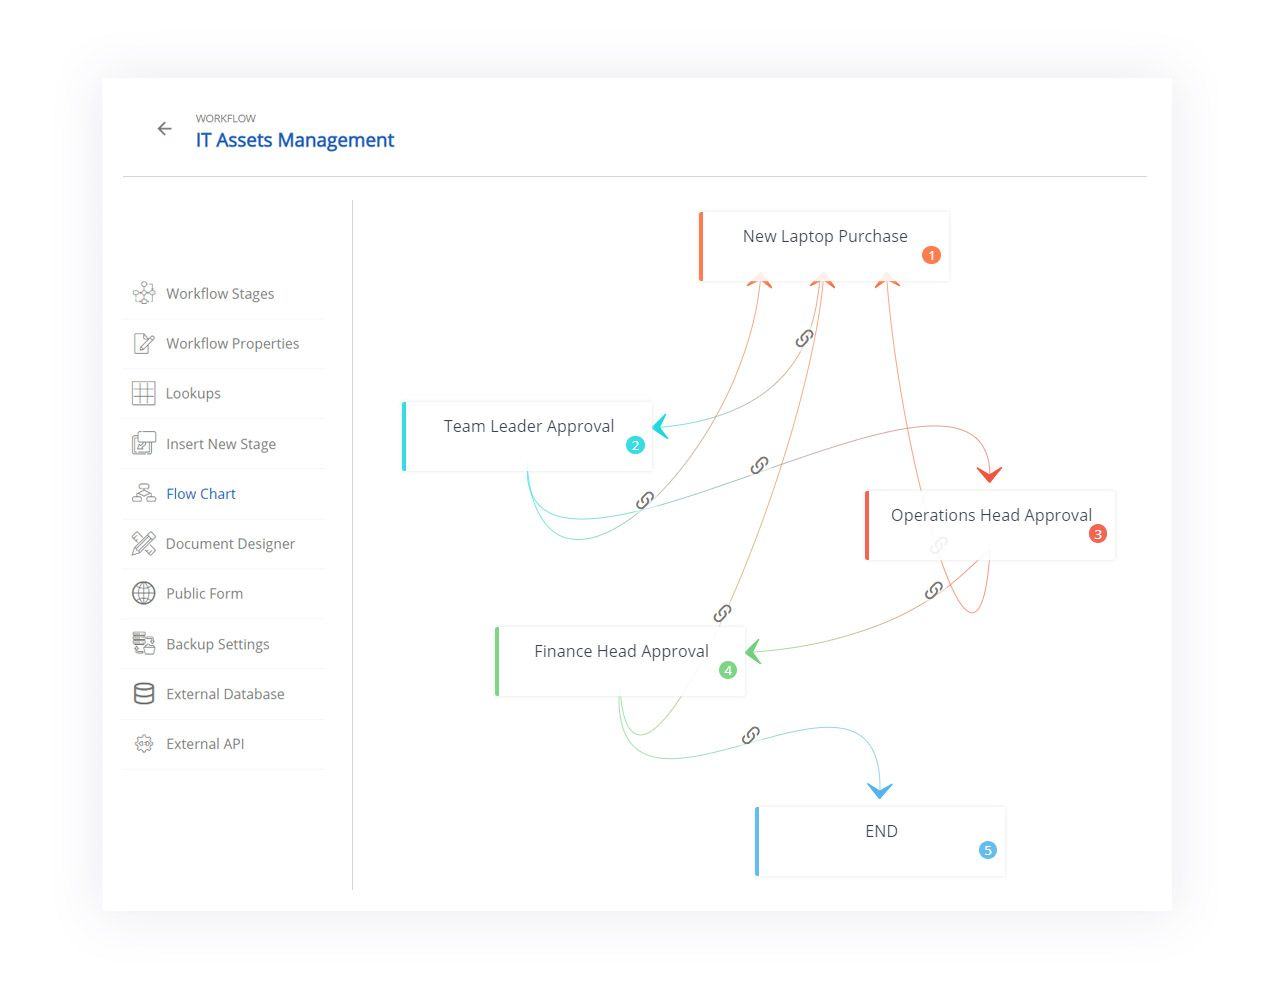 multi level approval workflow example